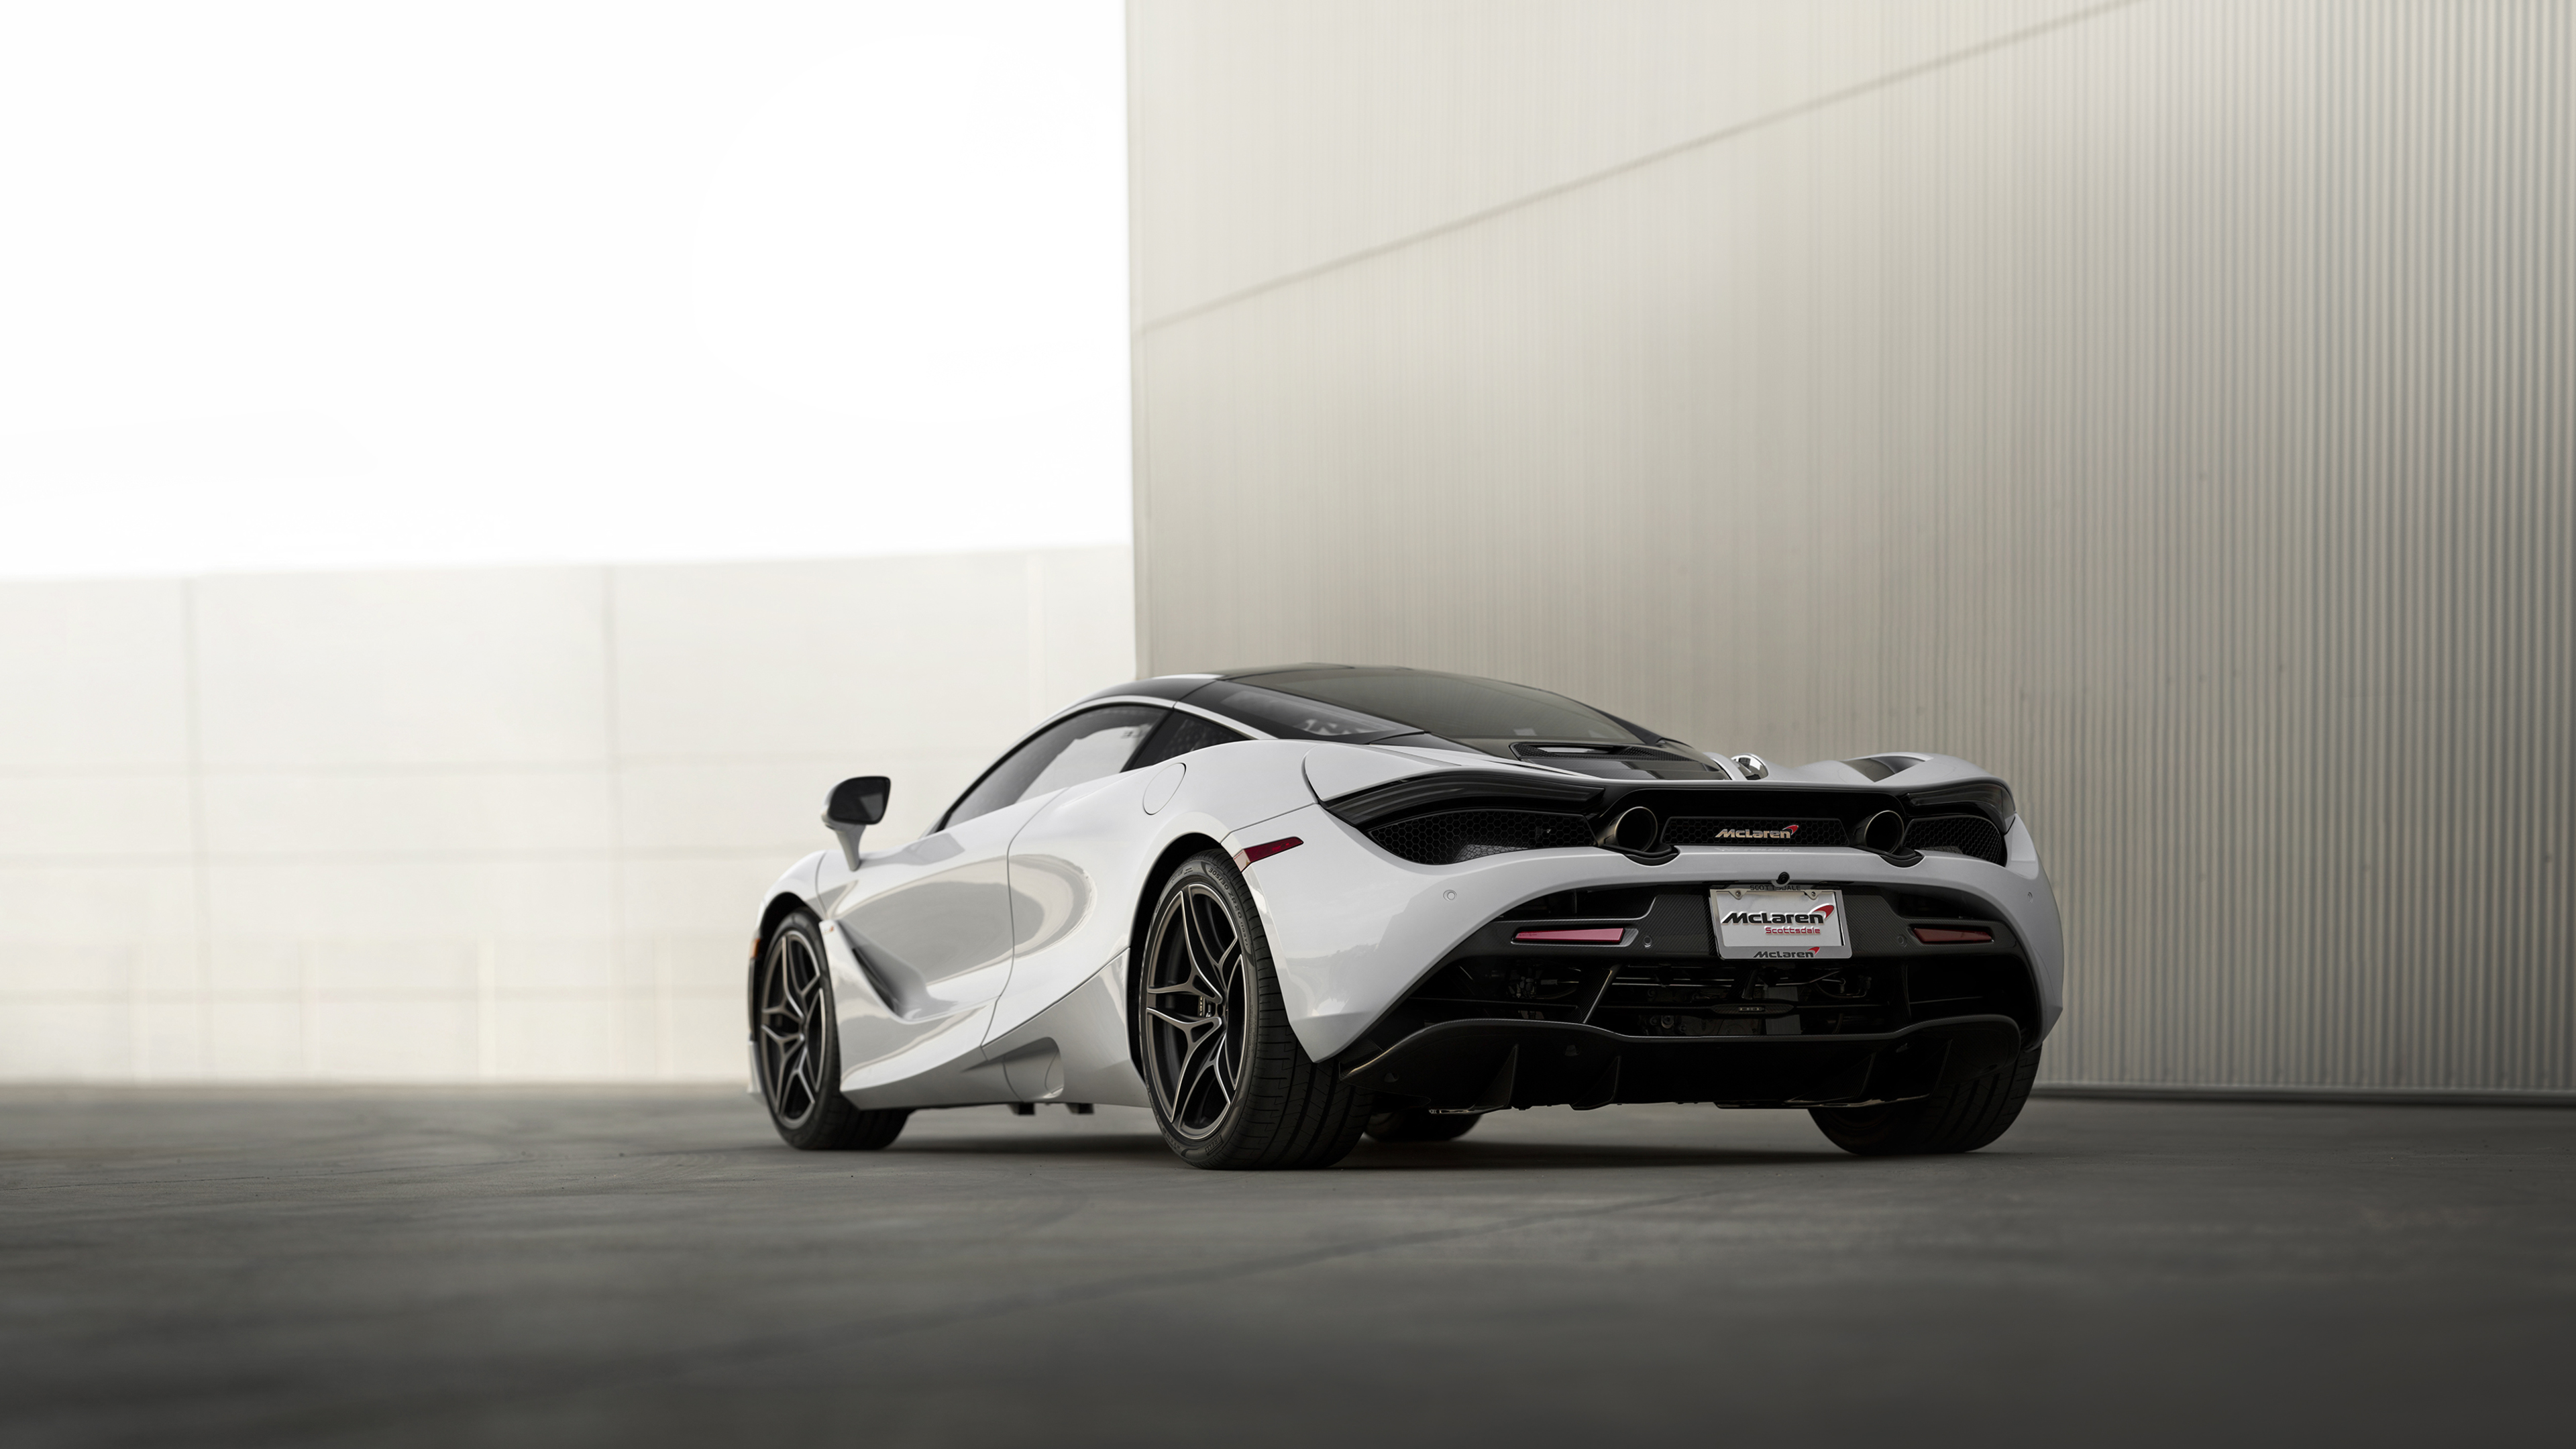 mclaren 720s coupe 1569188403 - Mclaren 720s Coupe - mclaren wallpapers, mclaren 720s wallpapers, hd-wallpapers, cars wallpapers, 4k-wallpapers, 2019 cars wallpapers